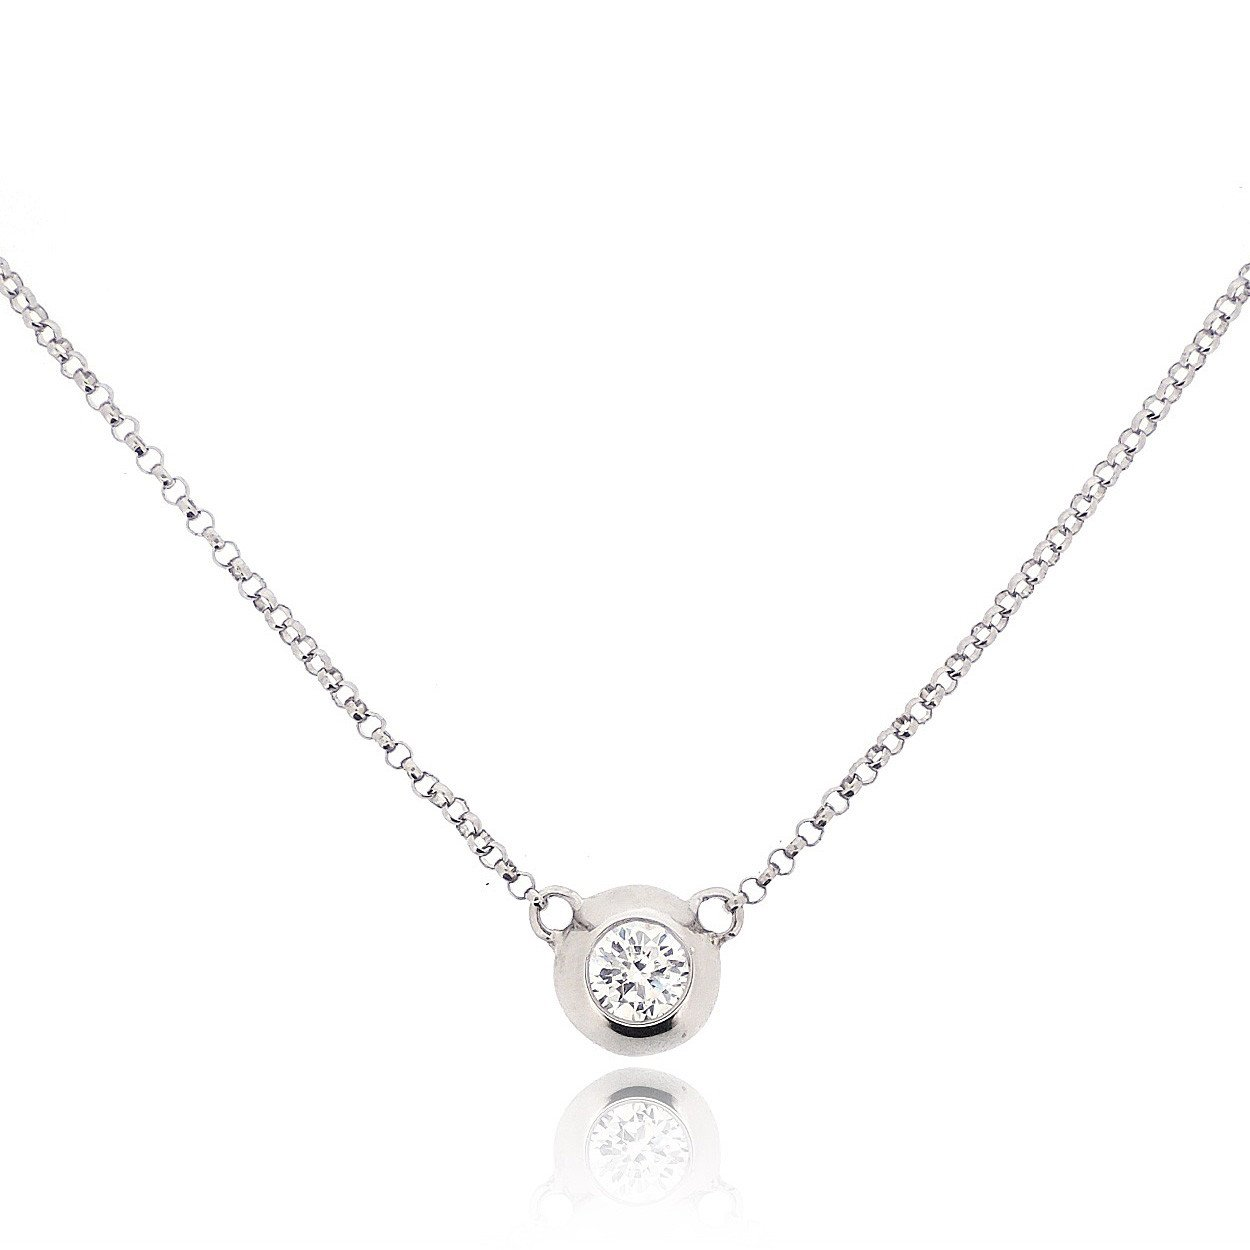 Sovats Round Necklace for Women Set with White Cubic Zirconia 925 Sterling Silver Rhodium Plated - Simple, Stylish &Trendy Necklace for Teens and Girls East India 857_en0087_us